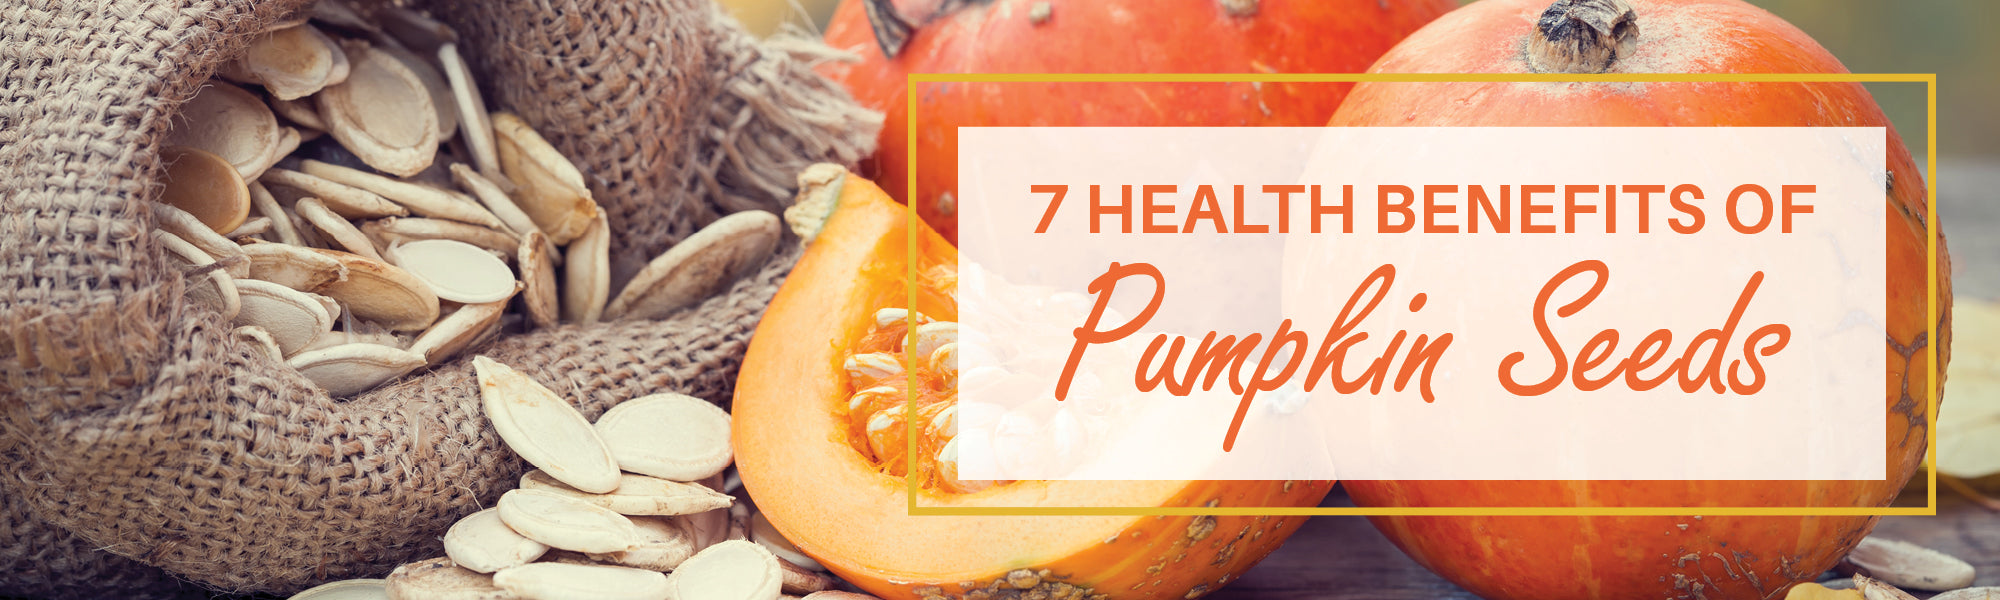 Seven Health Benefits of Pumpkin Seeds